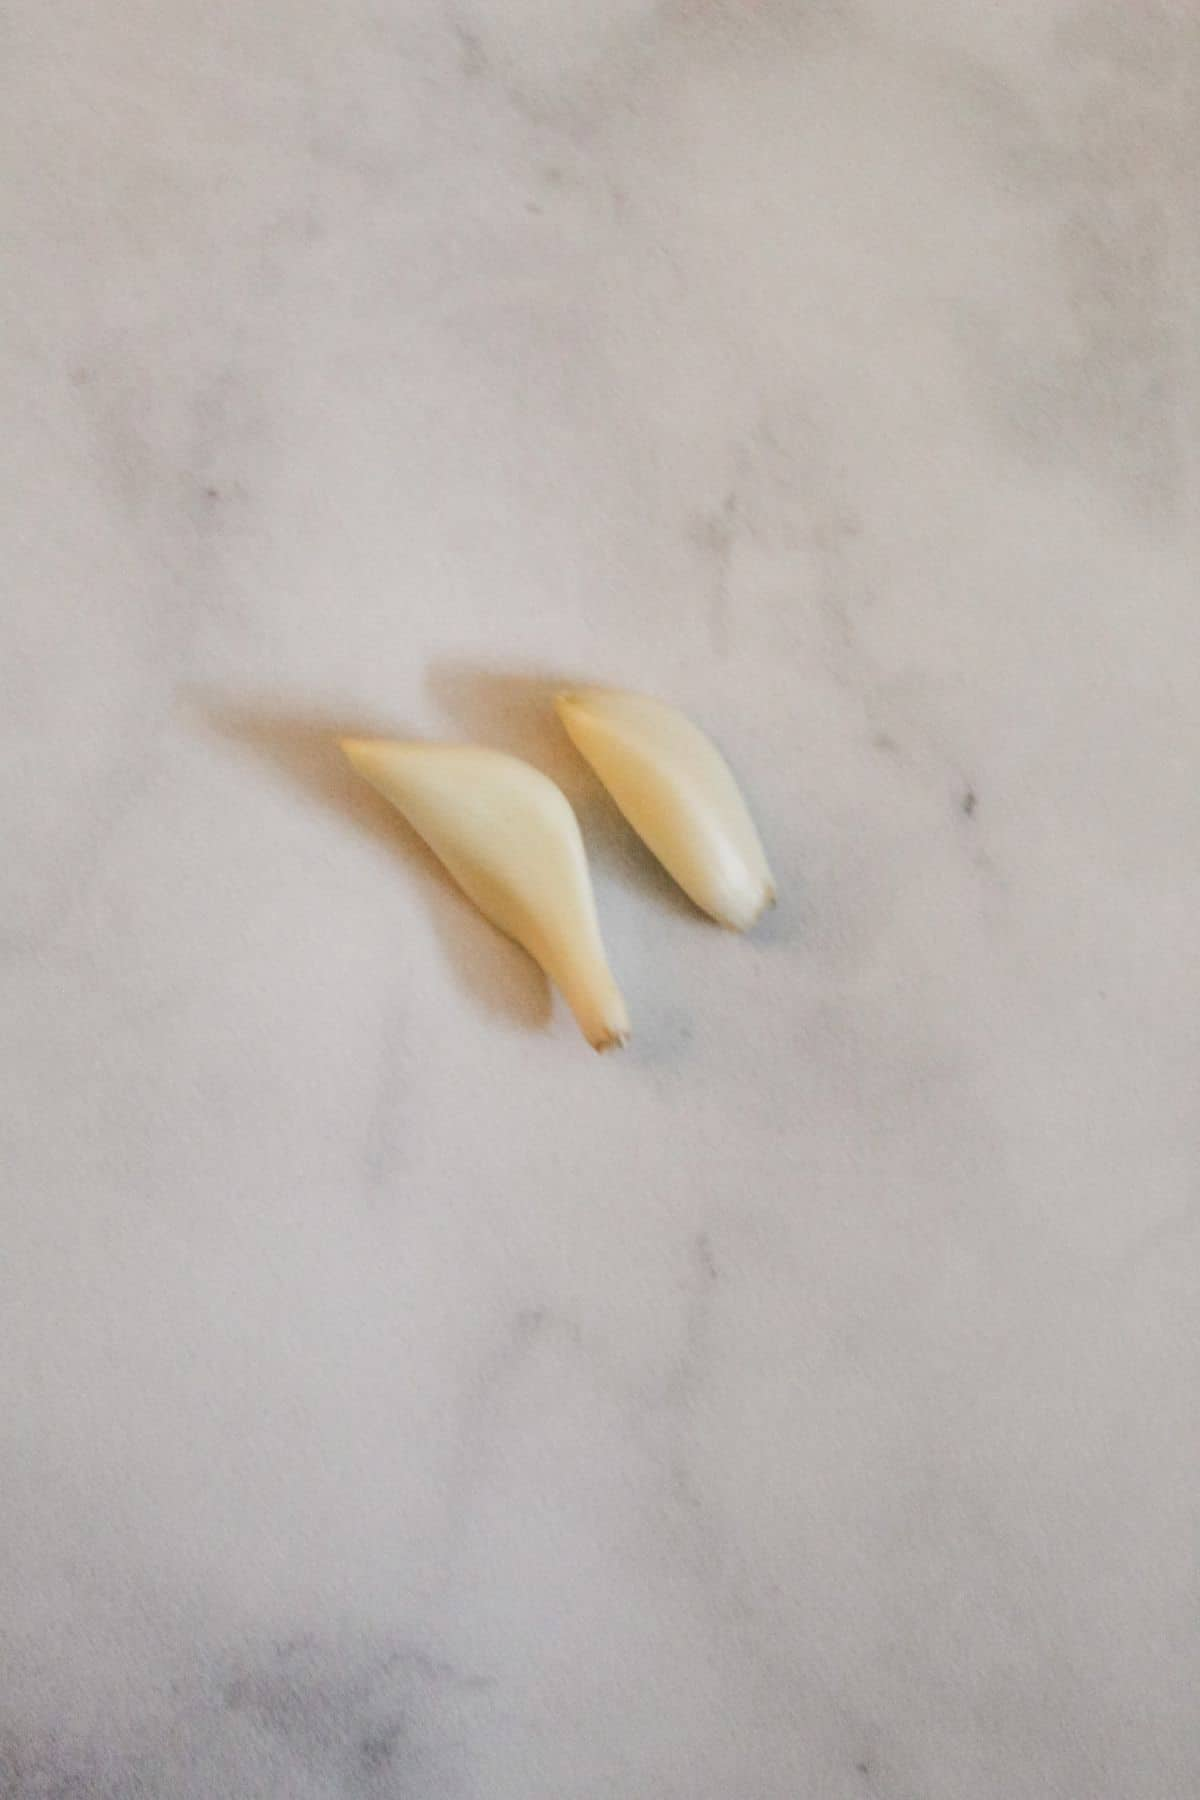 two cloves of garlic that have been peeled